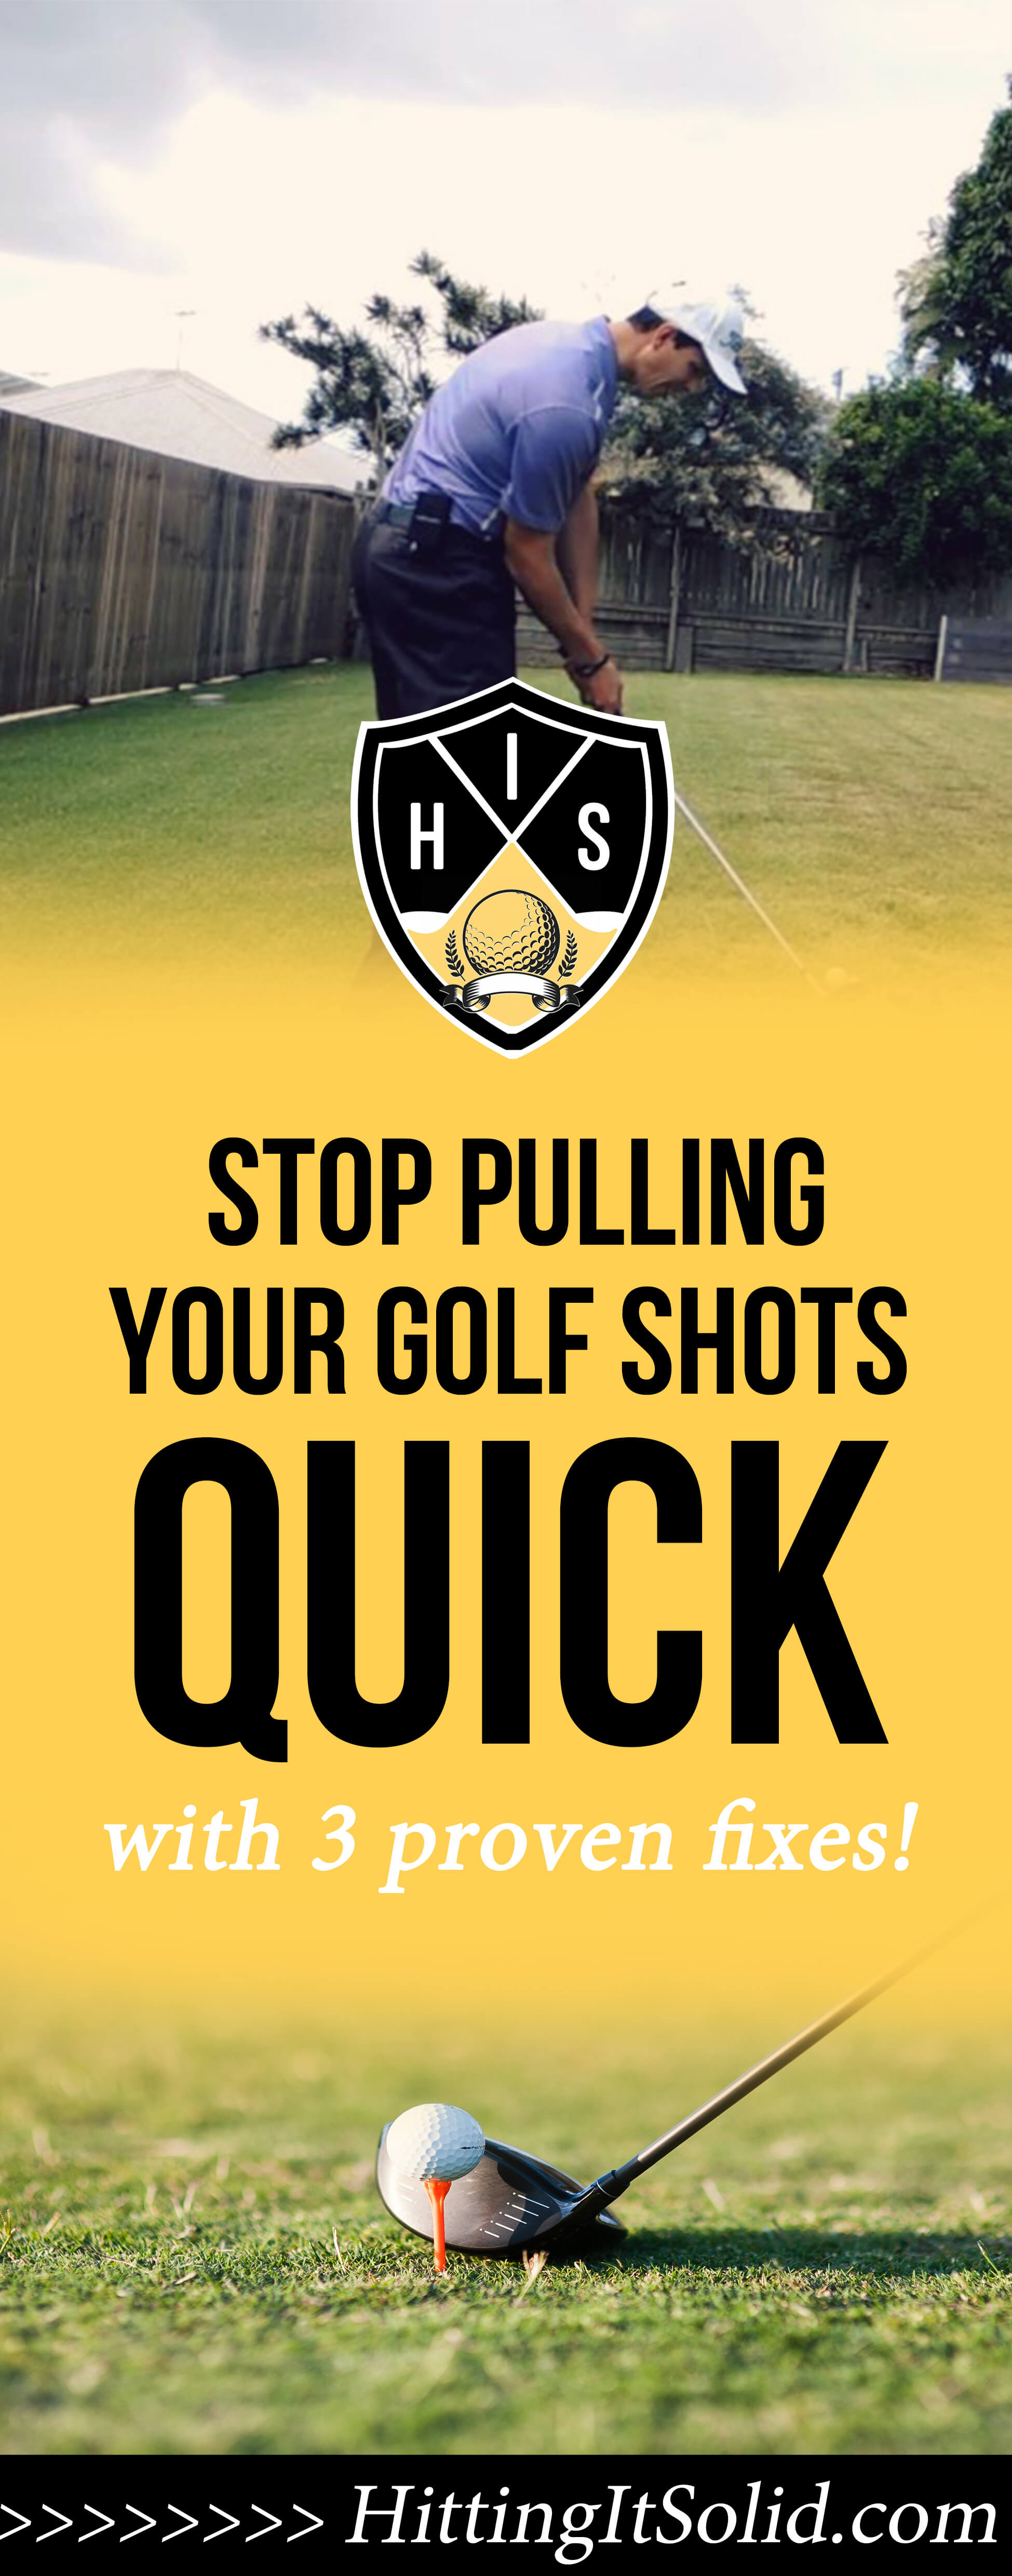 If you want to know how to stop pulling golf shots fast you need to know what the causes are and how you can fix them. These 3 simple methods will fix your pulled golf shots so you can hit straighter shots and shoot lower scores